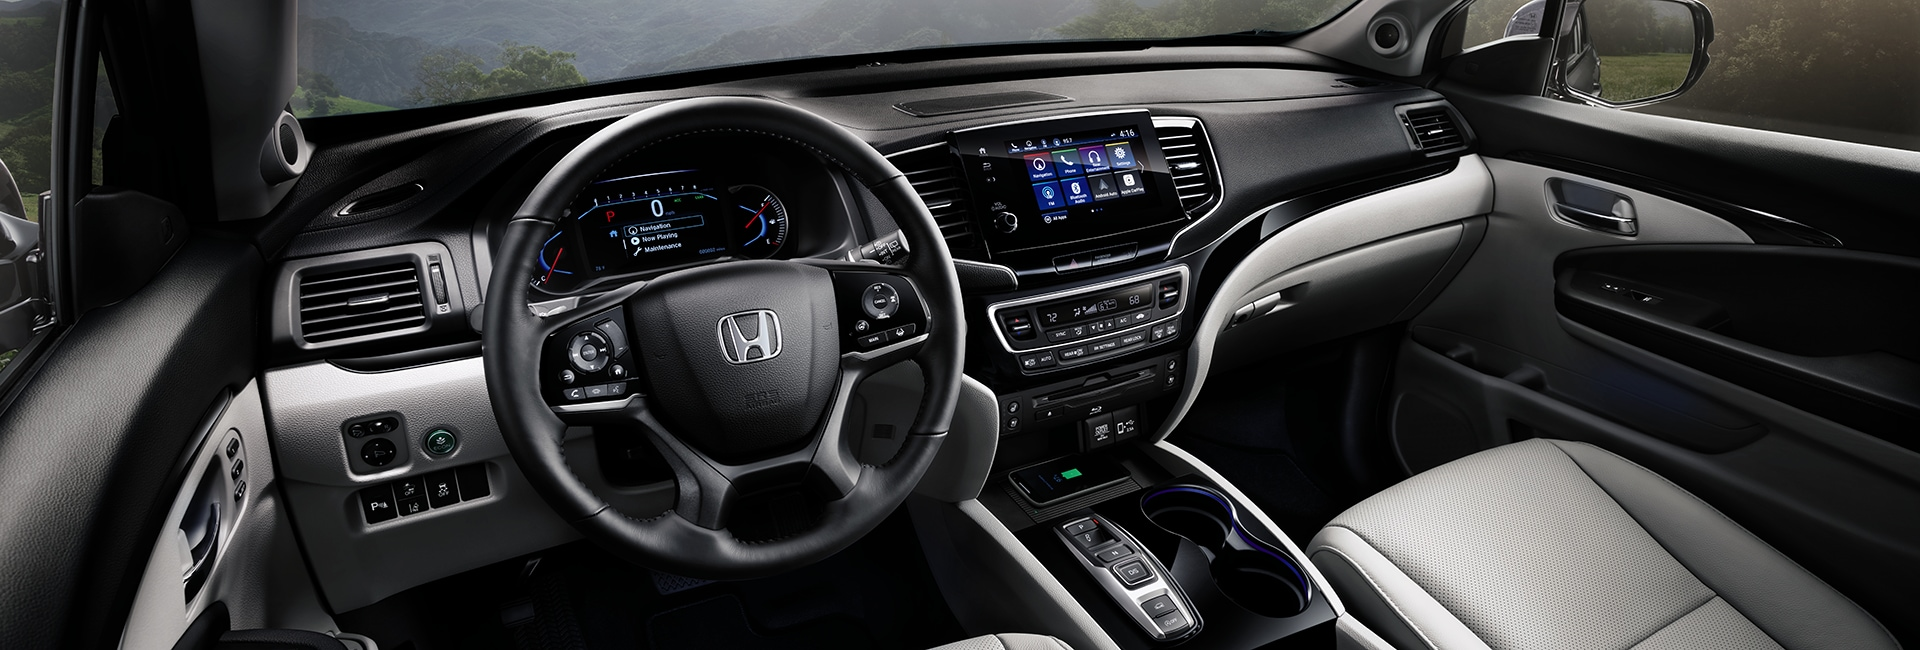 2019 Honda Pilot Interior Features